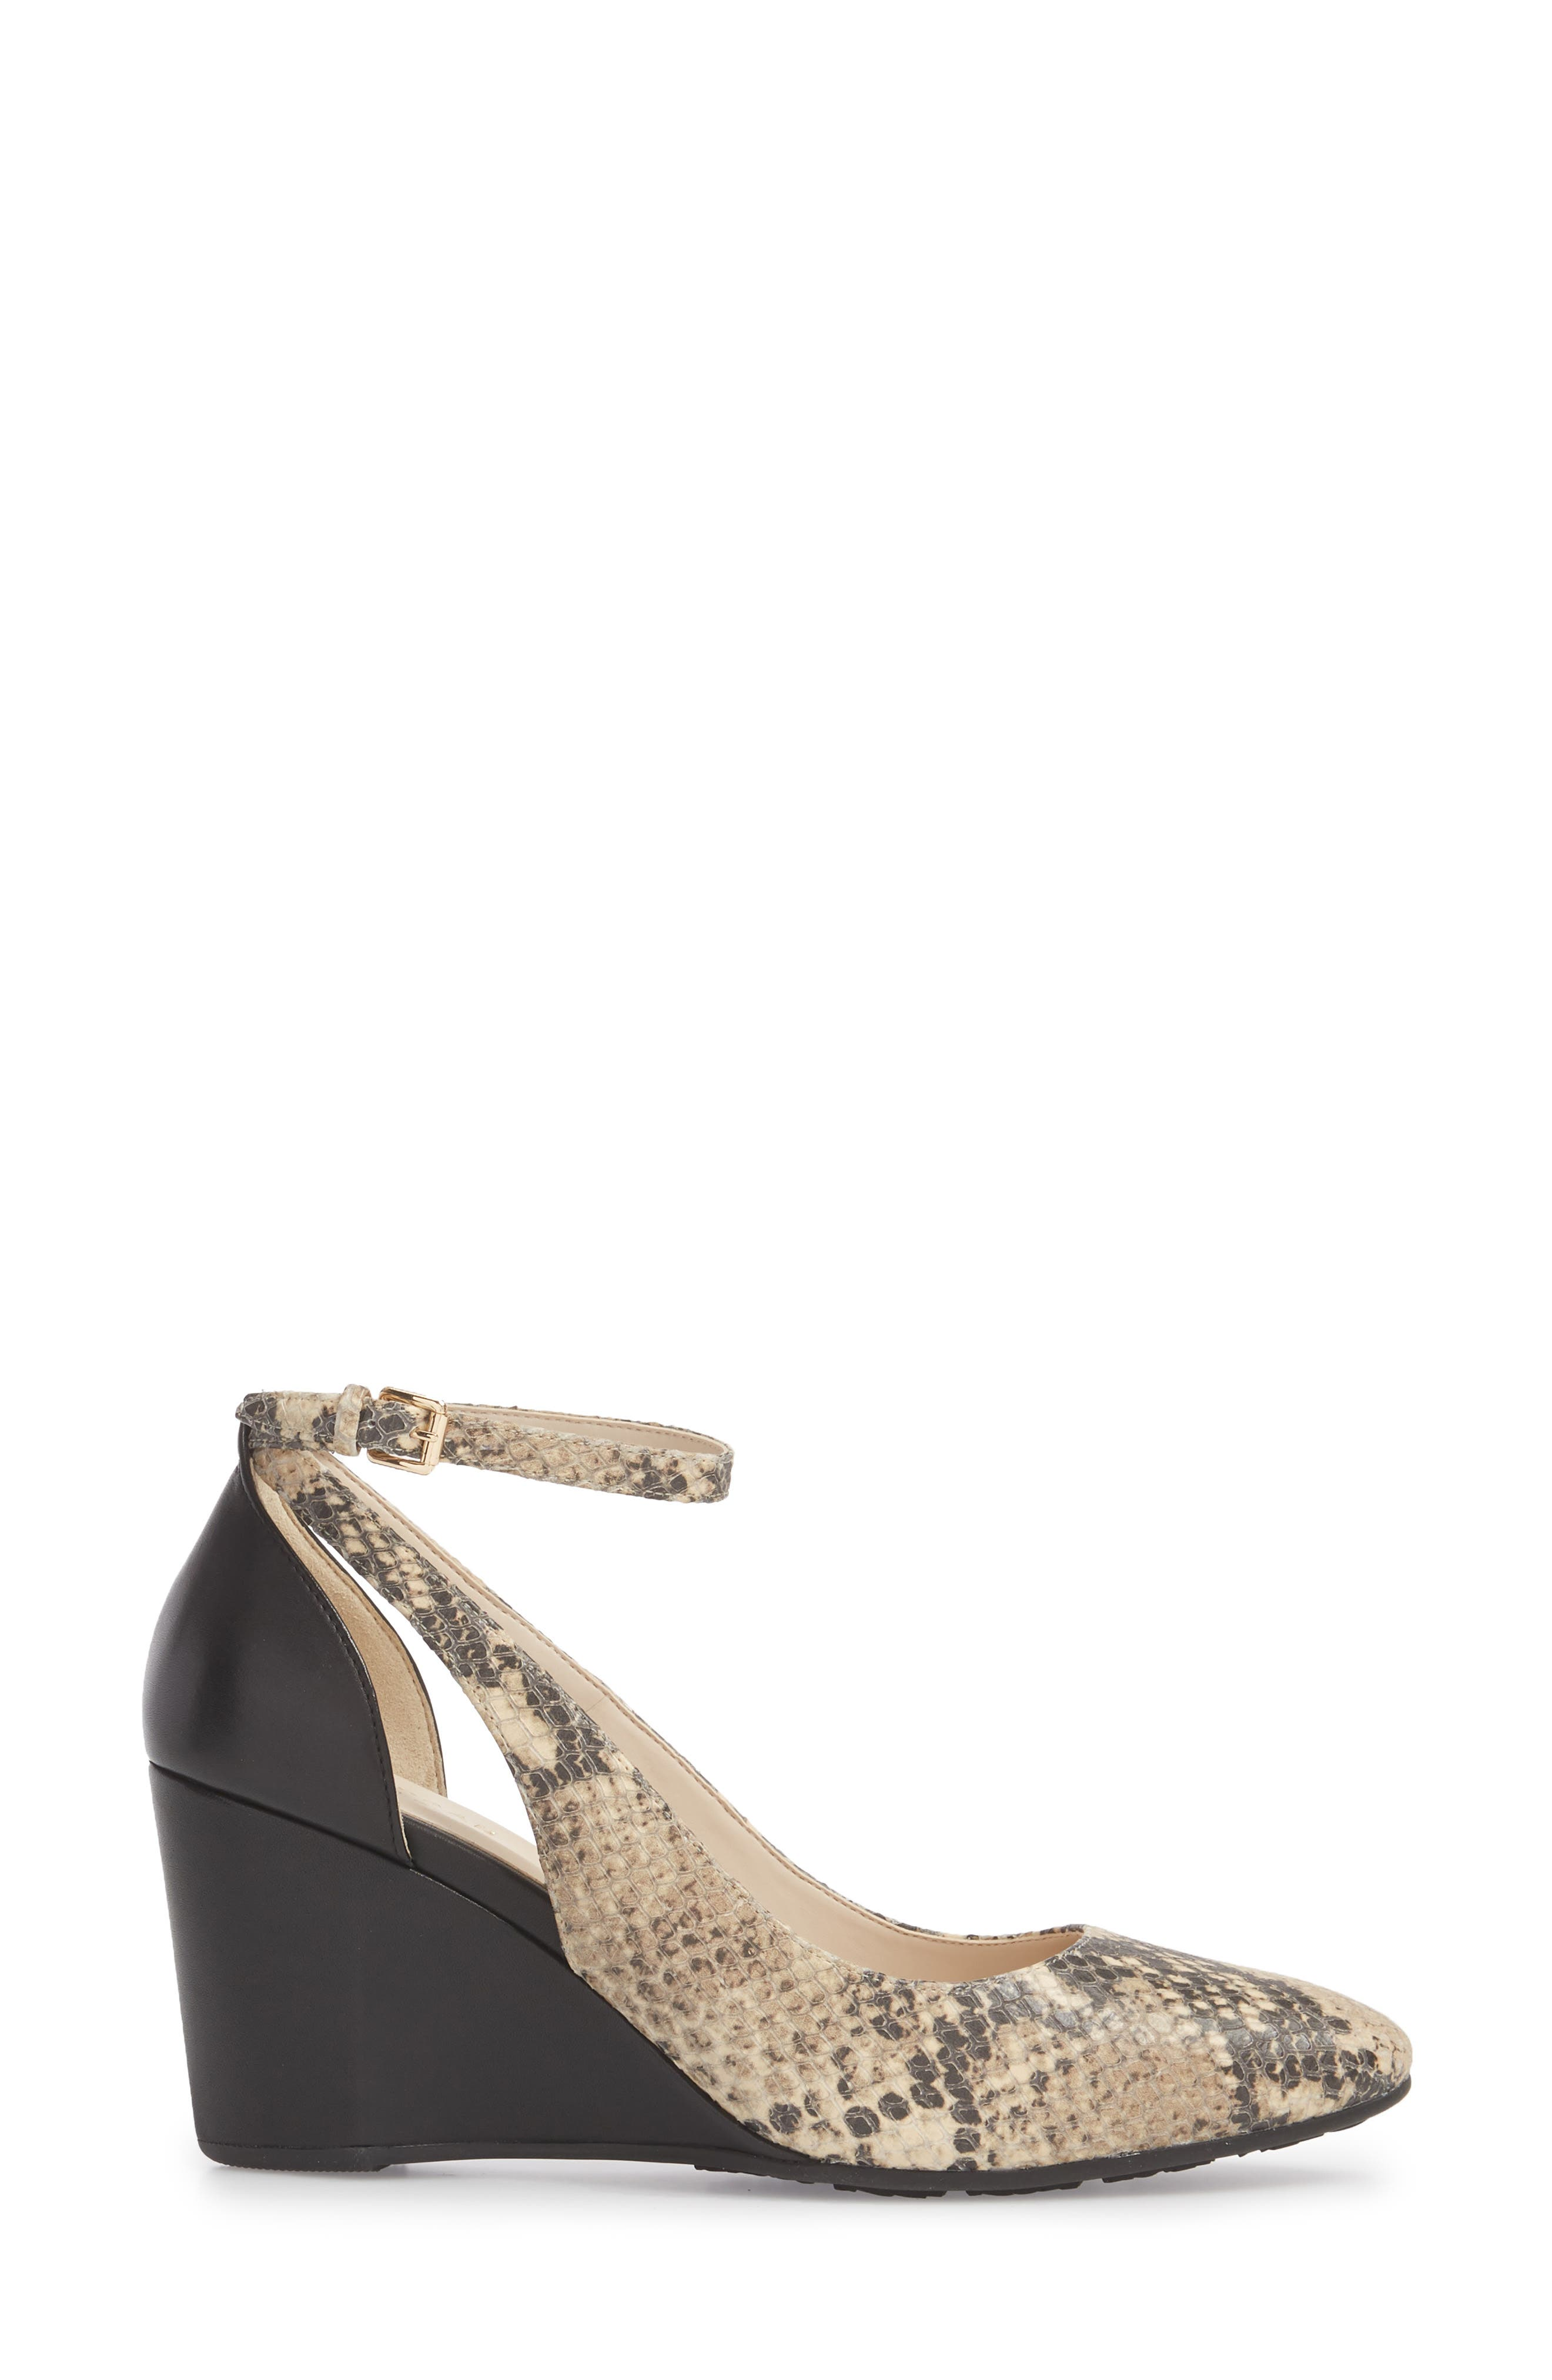 Lacey Cutout Wedge Pump,                             Alternate thumbnail 3, color,                             SNAKE PRINT LEATHER